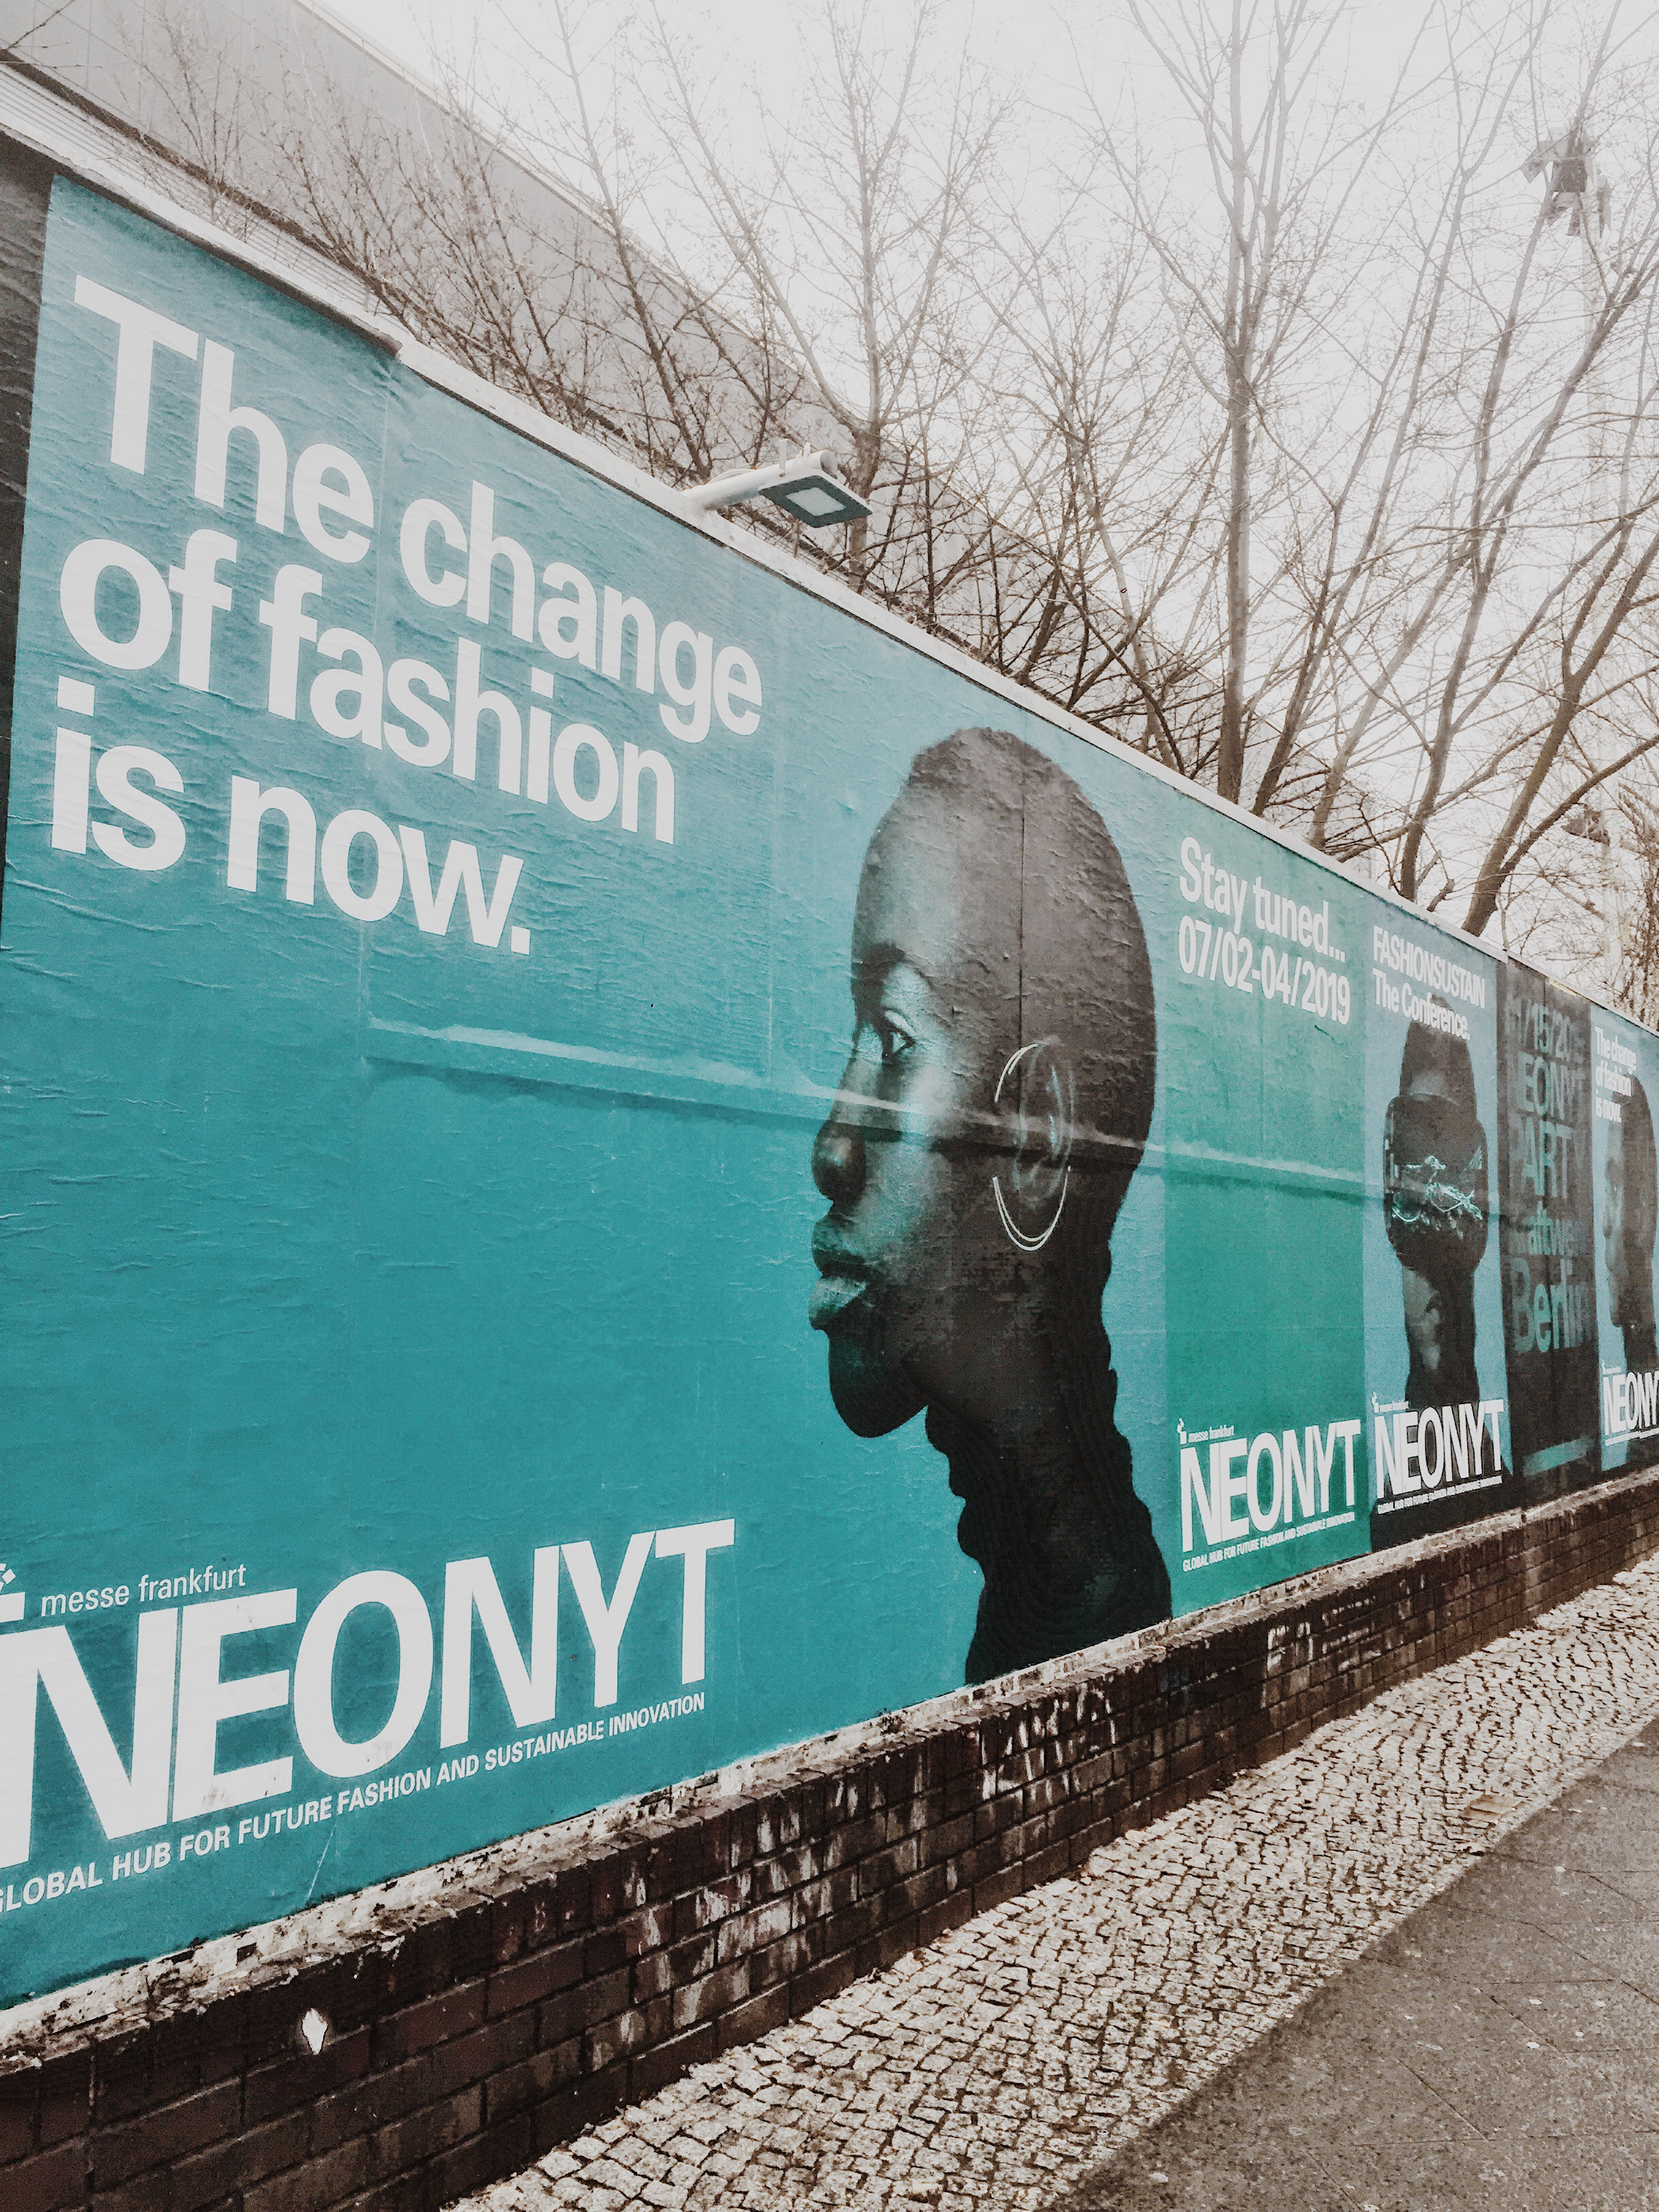 NEONYT Highlights: My Favourite Fashion Innovations & Conscious Creators